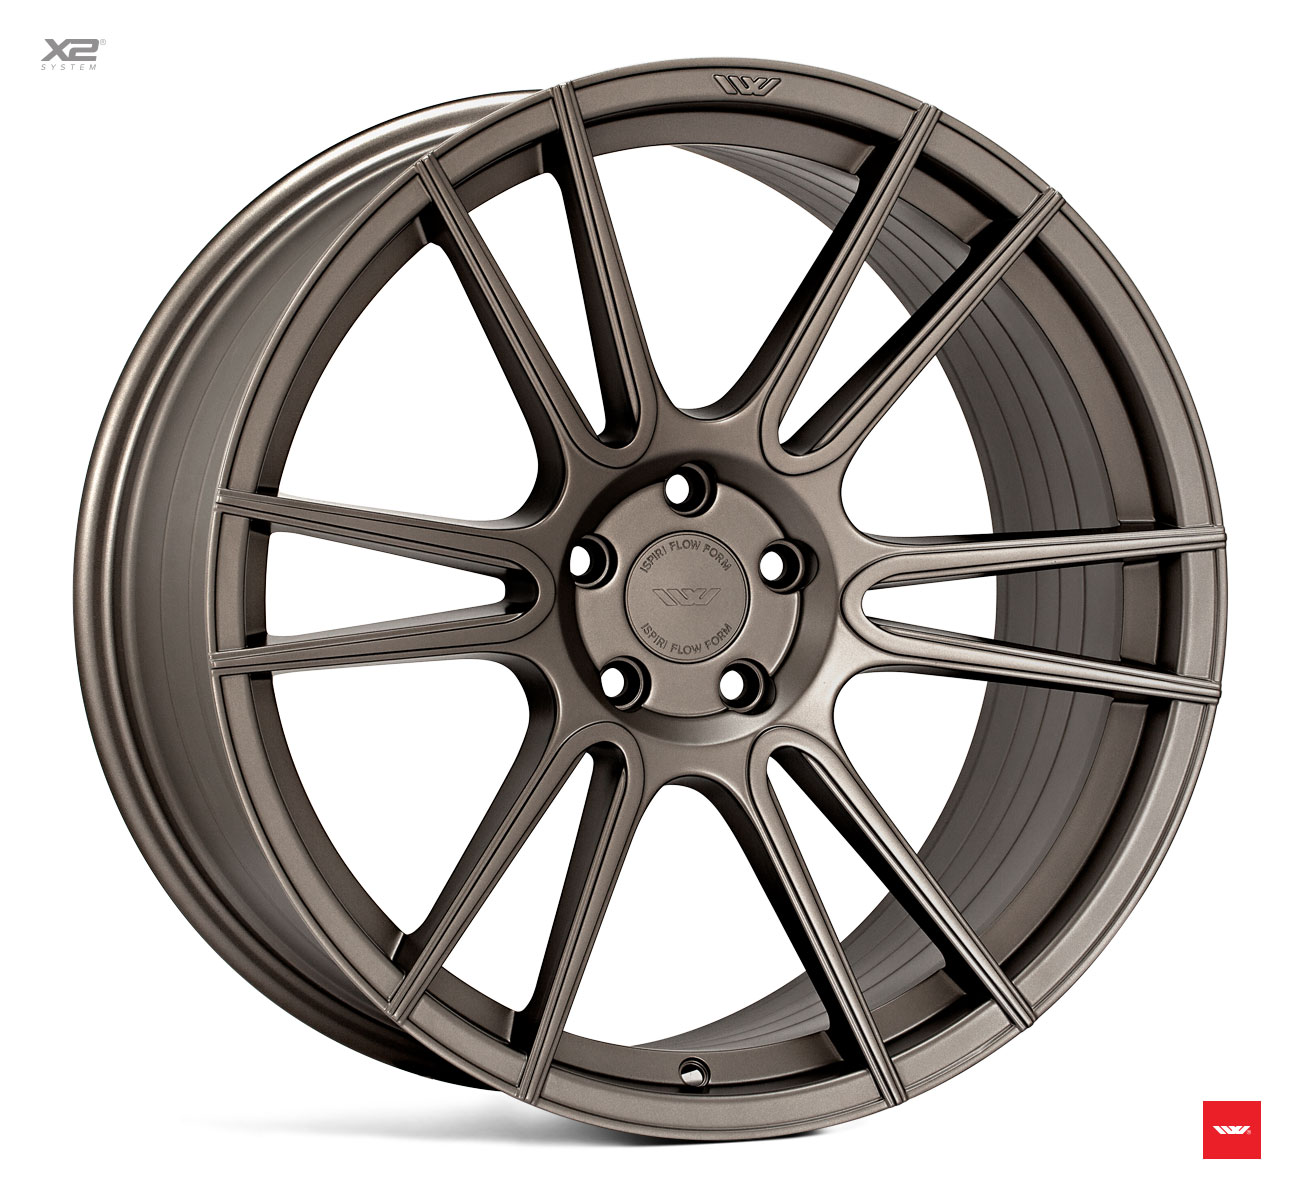 "NEW 20"" ISPIRI FFR7 TWIN CURVED 6 SPOKE ALLOY WHEELS IN MATT CARBON BRONZE, WIDER 10"" REAR 5x120"